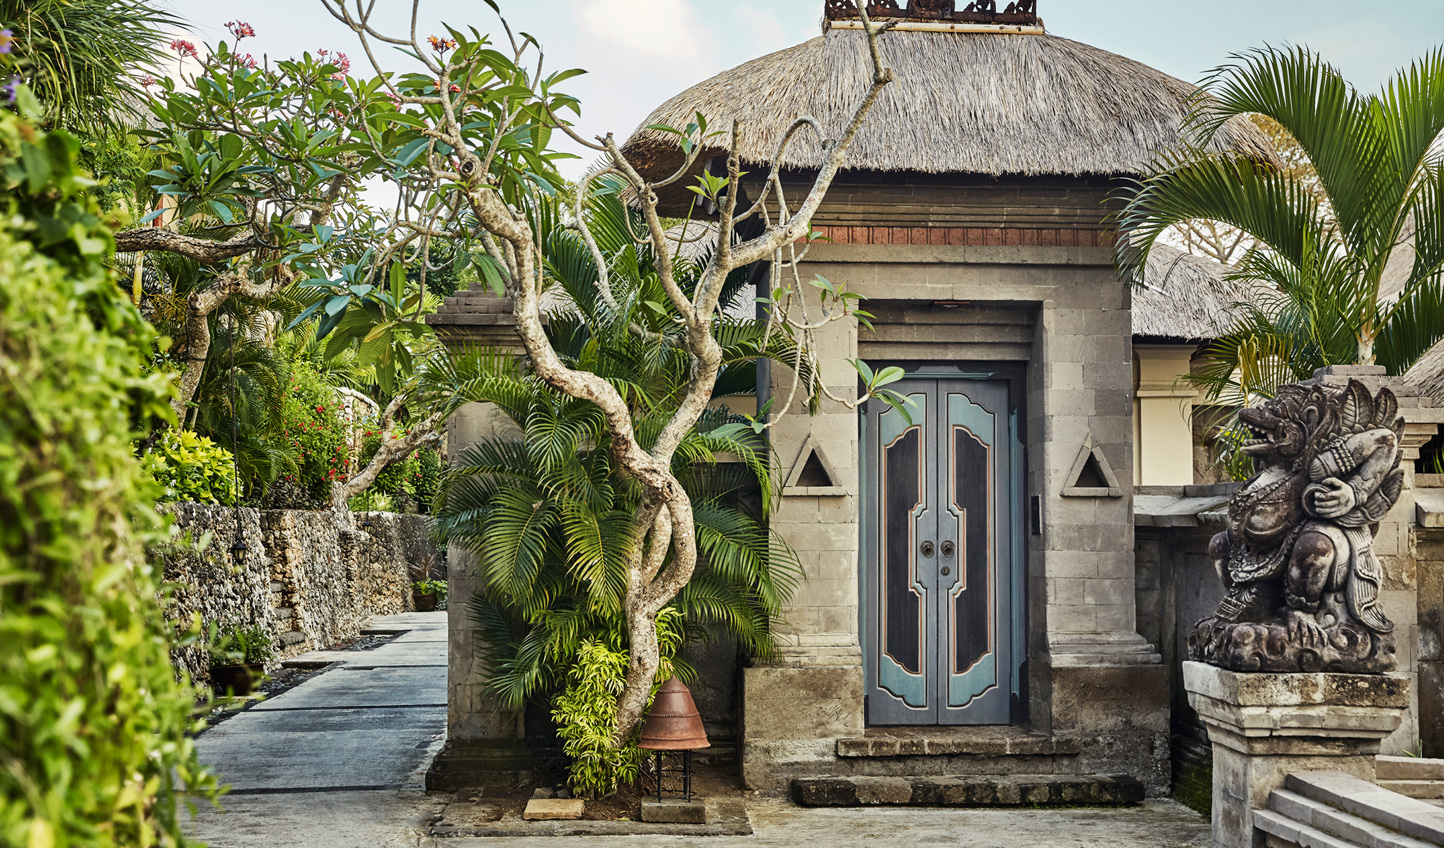 Rooted in Balinese heritage, the villas of Four Seasons Jimbaran Bay feel part of a traditional village